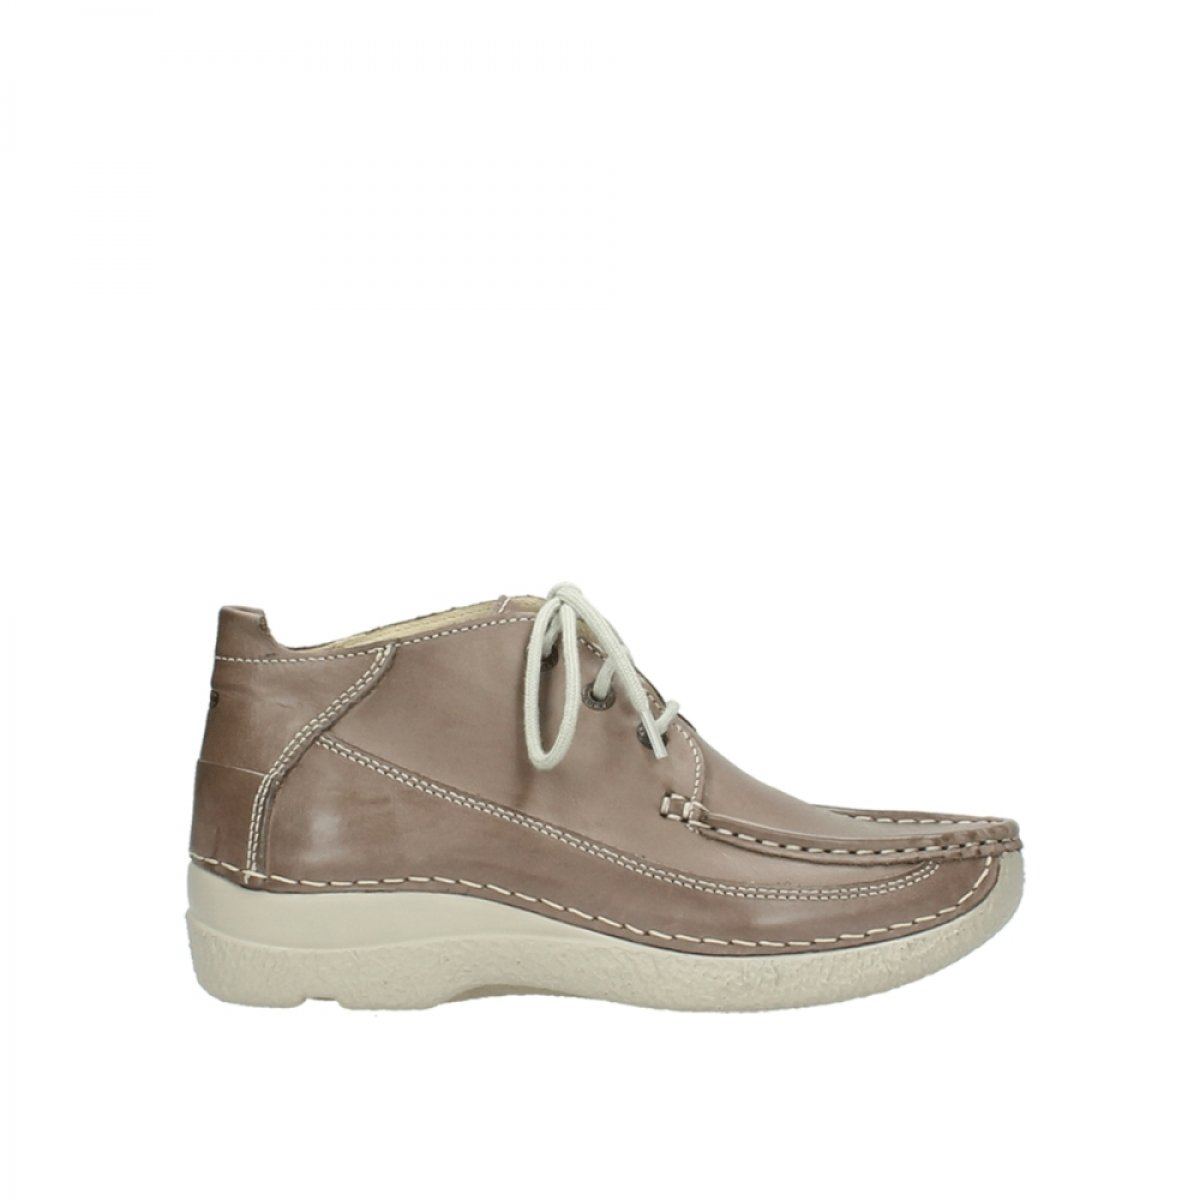 Wolky Confort Chaussures Corde à lacets Wolky 06200 Corde Rouleau MOC Confort 30150 Taupe Leather f258536 - piero.space